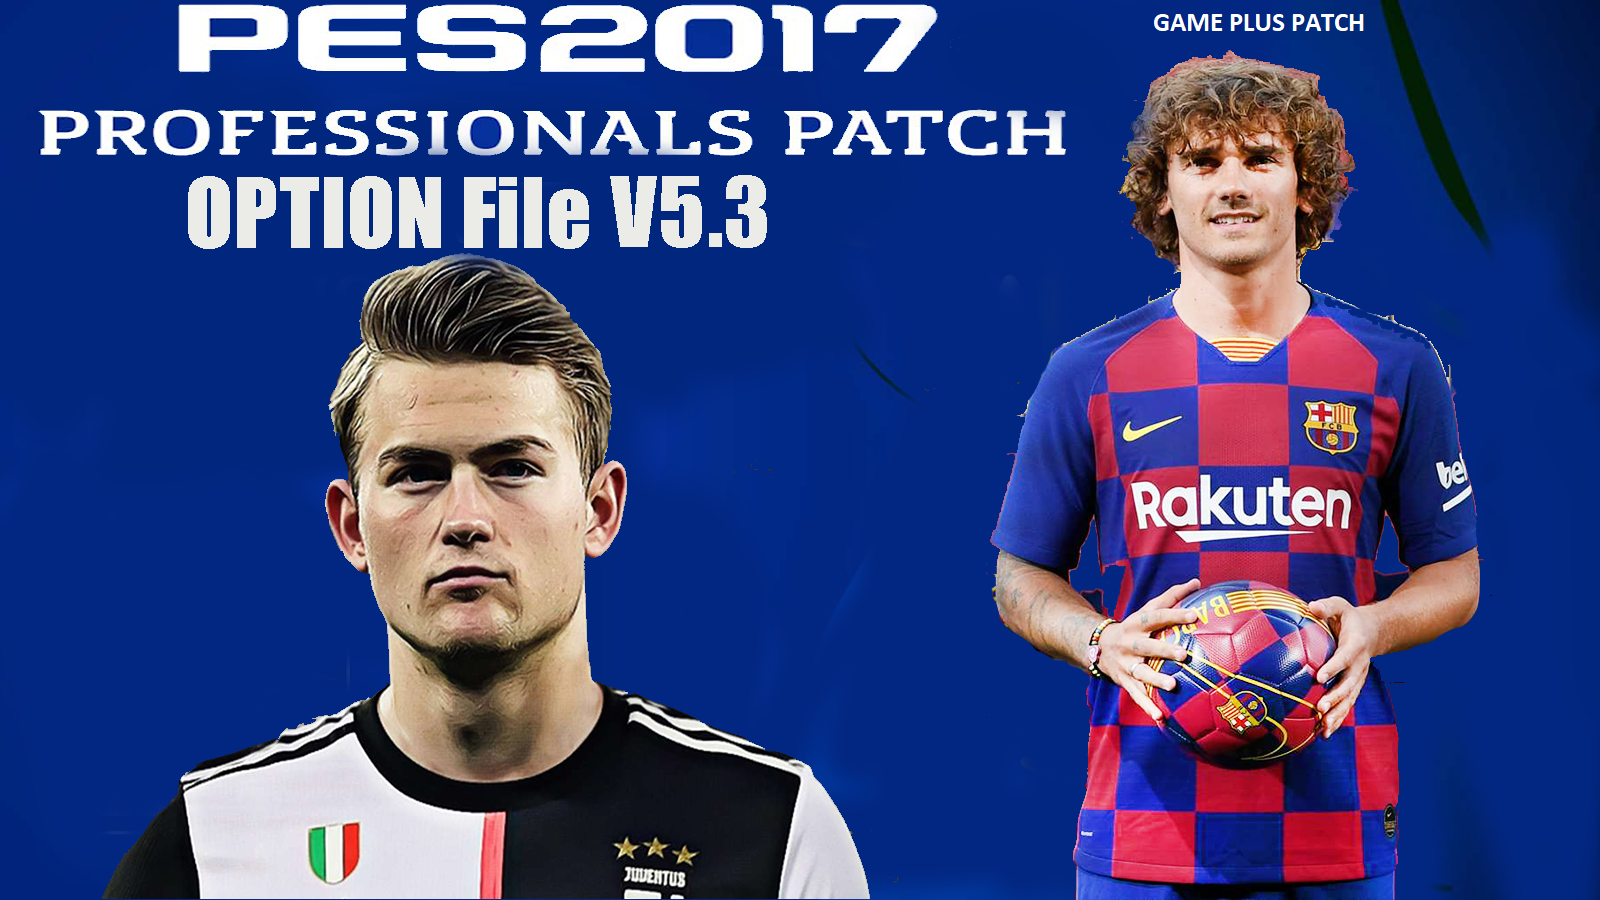 2019 ~ Game Plus Patch